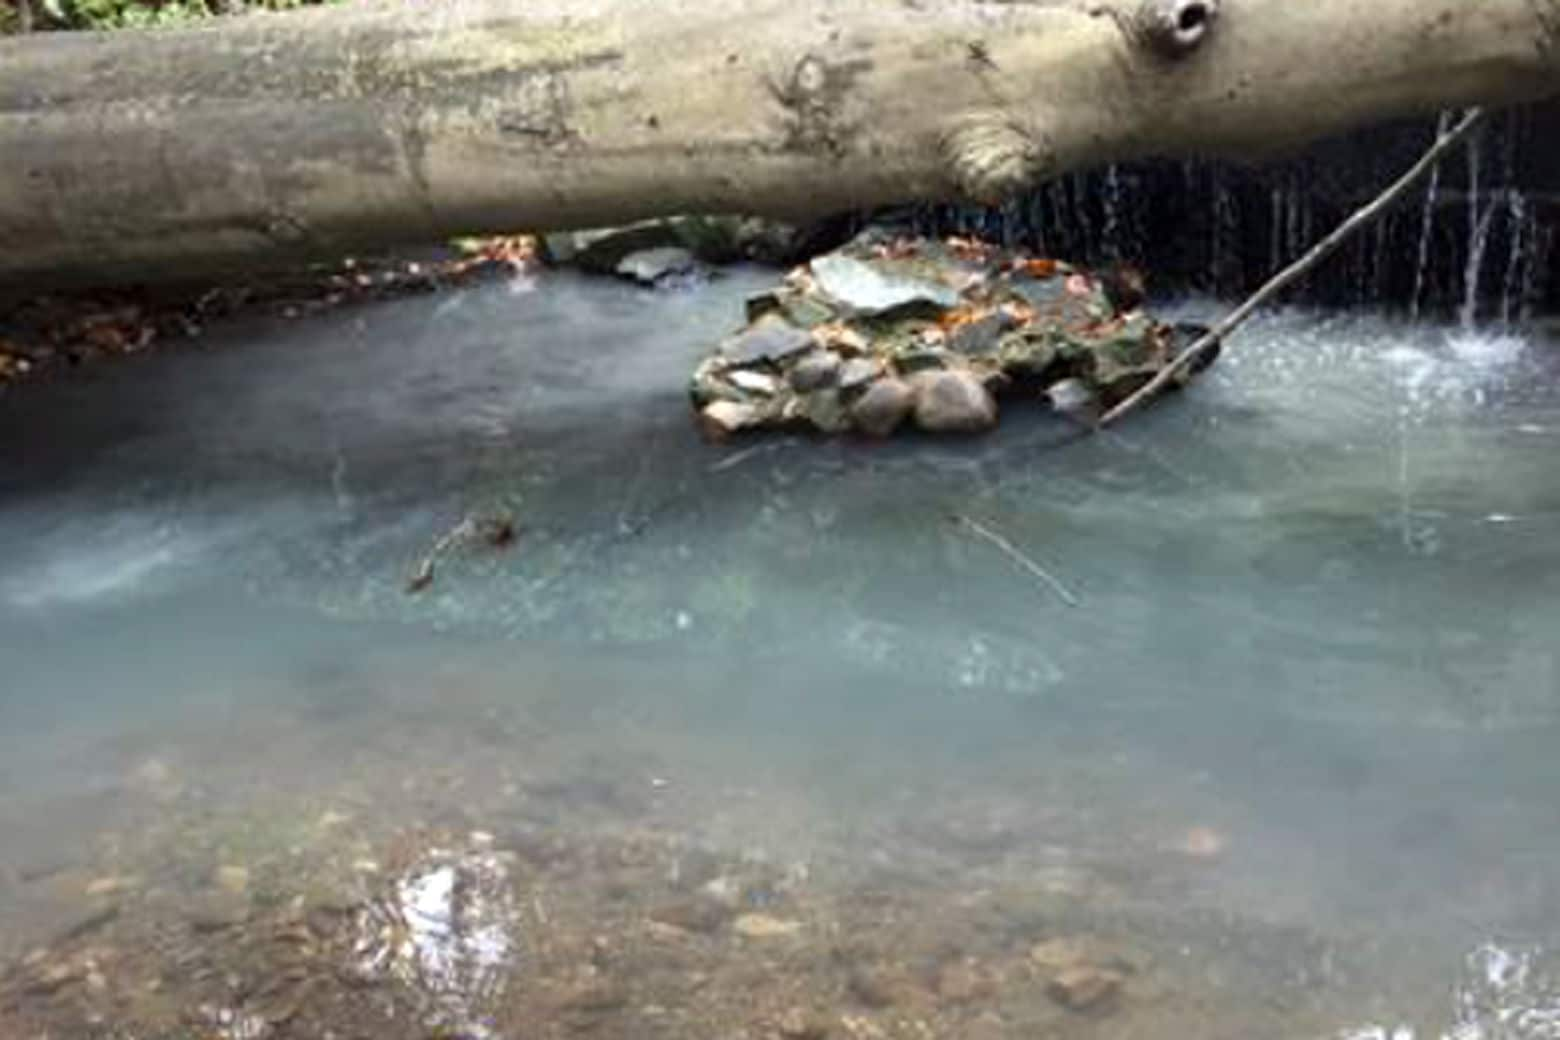 Illicit discharge at Normanstone Run. (Courtesy Mike Kolian)